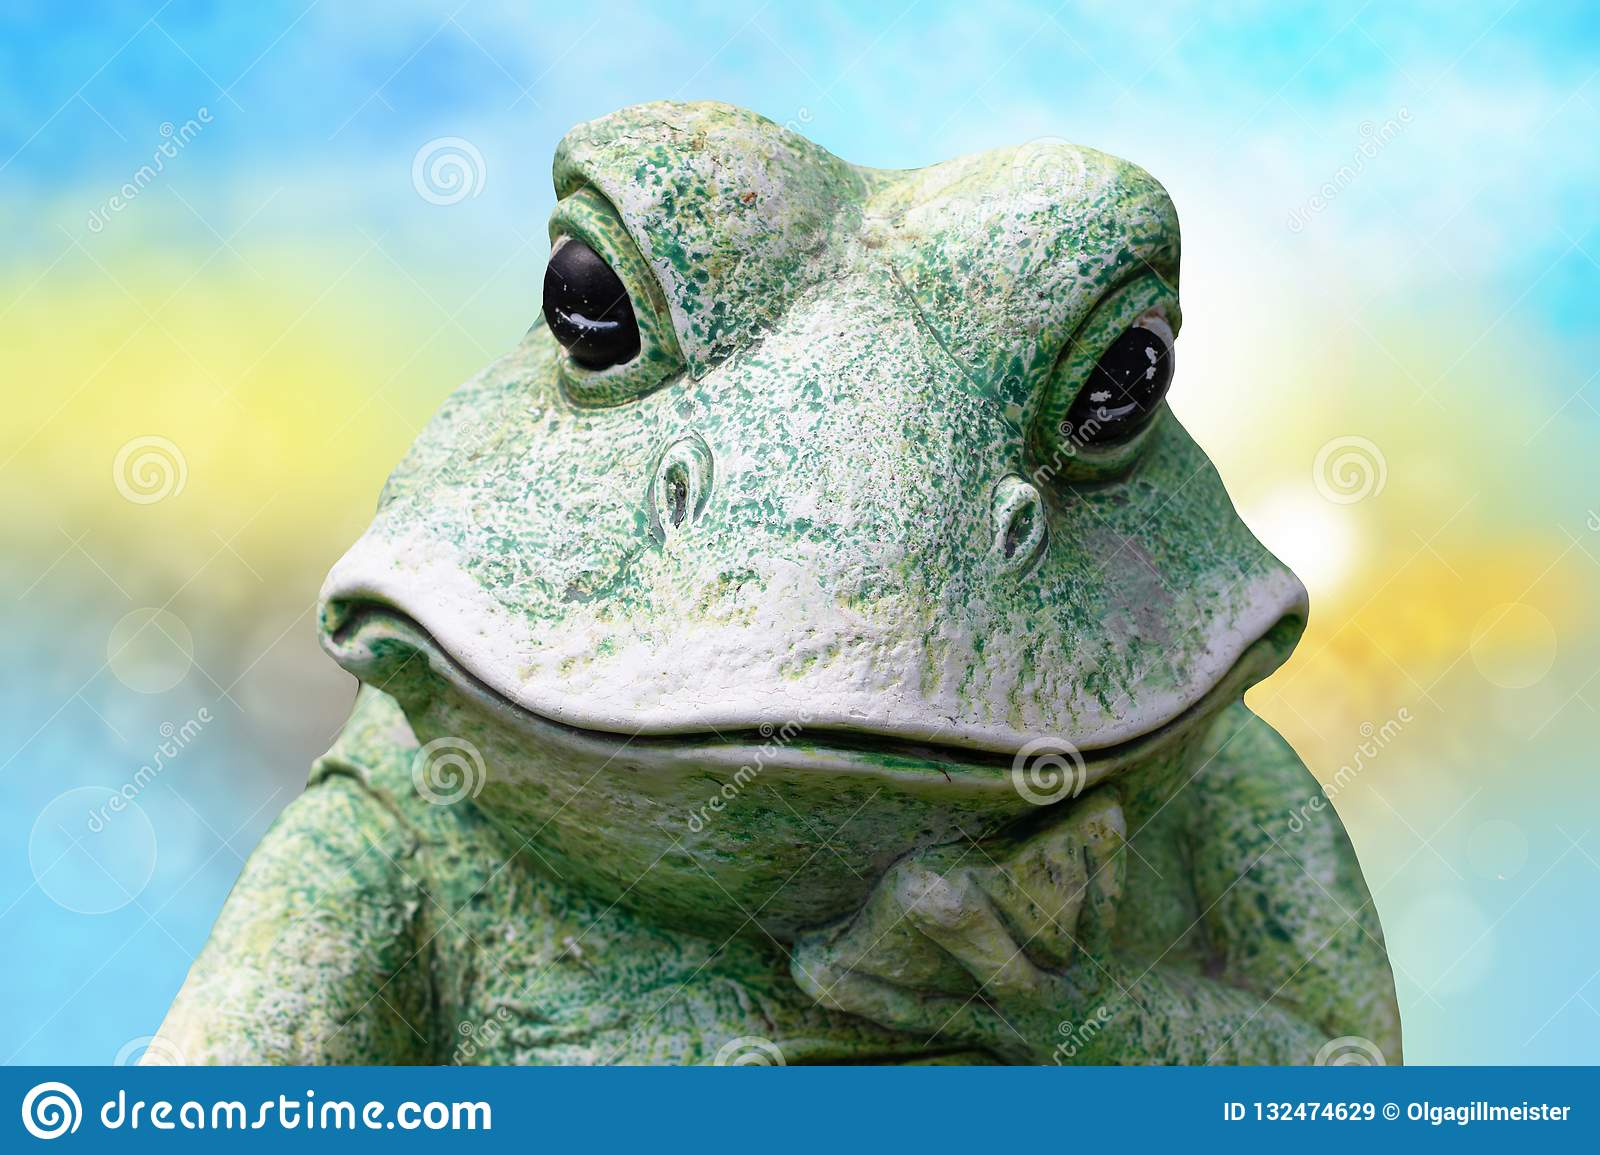 Close-up of frog head. A decorative old weathered ceramic frog o